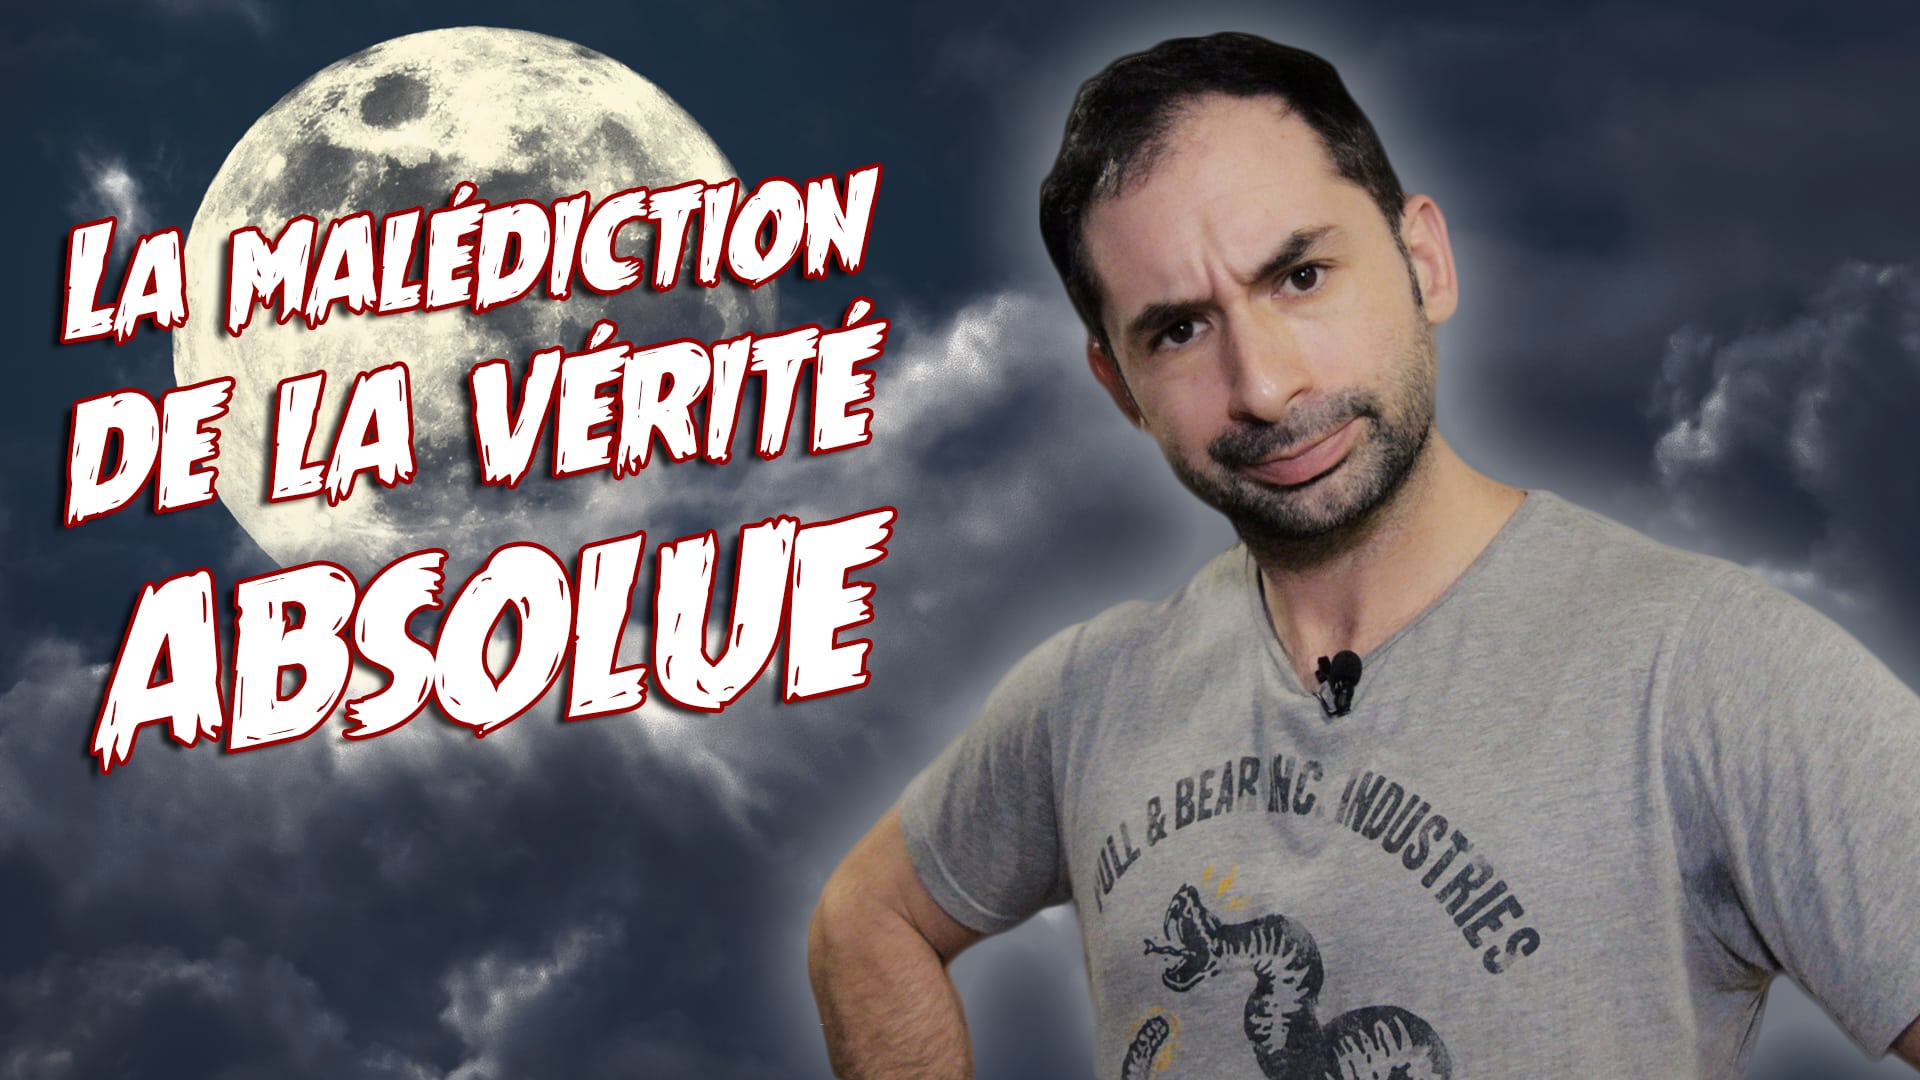 Malediction-verite-absolue